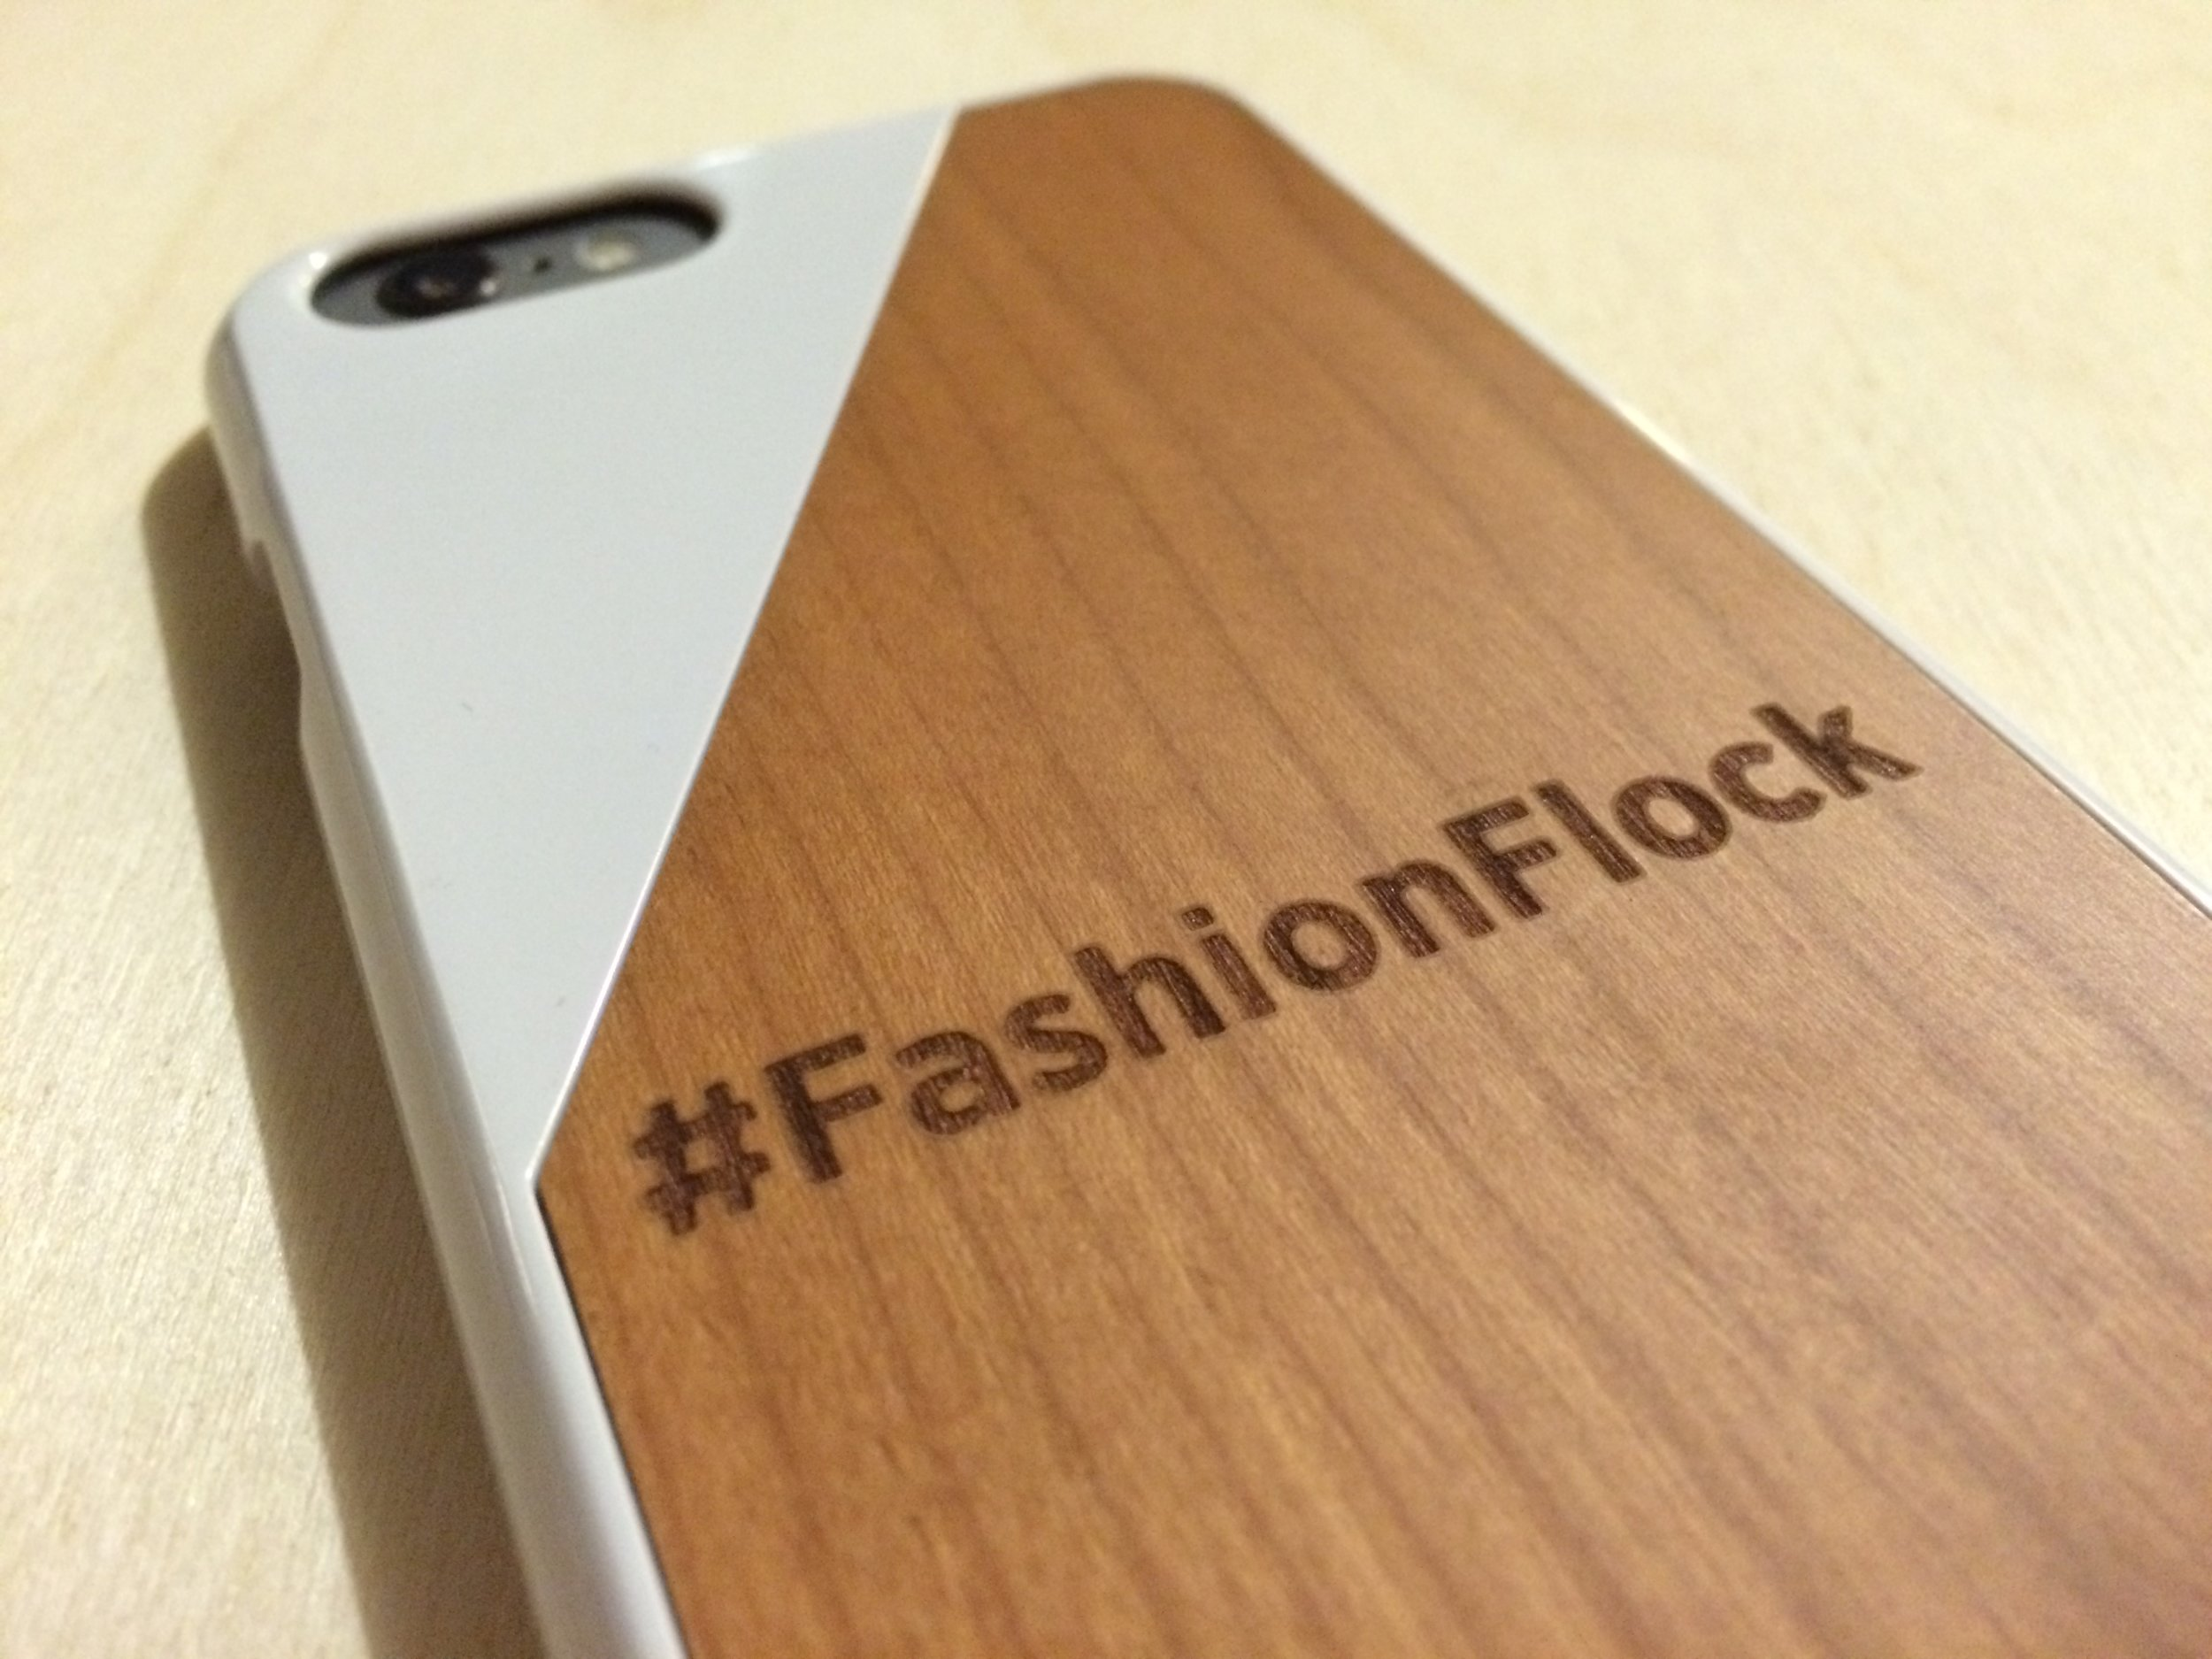 FashionFlock_case_rectangle.JPG